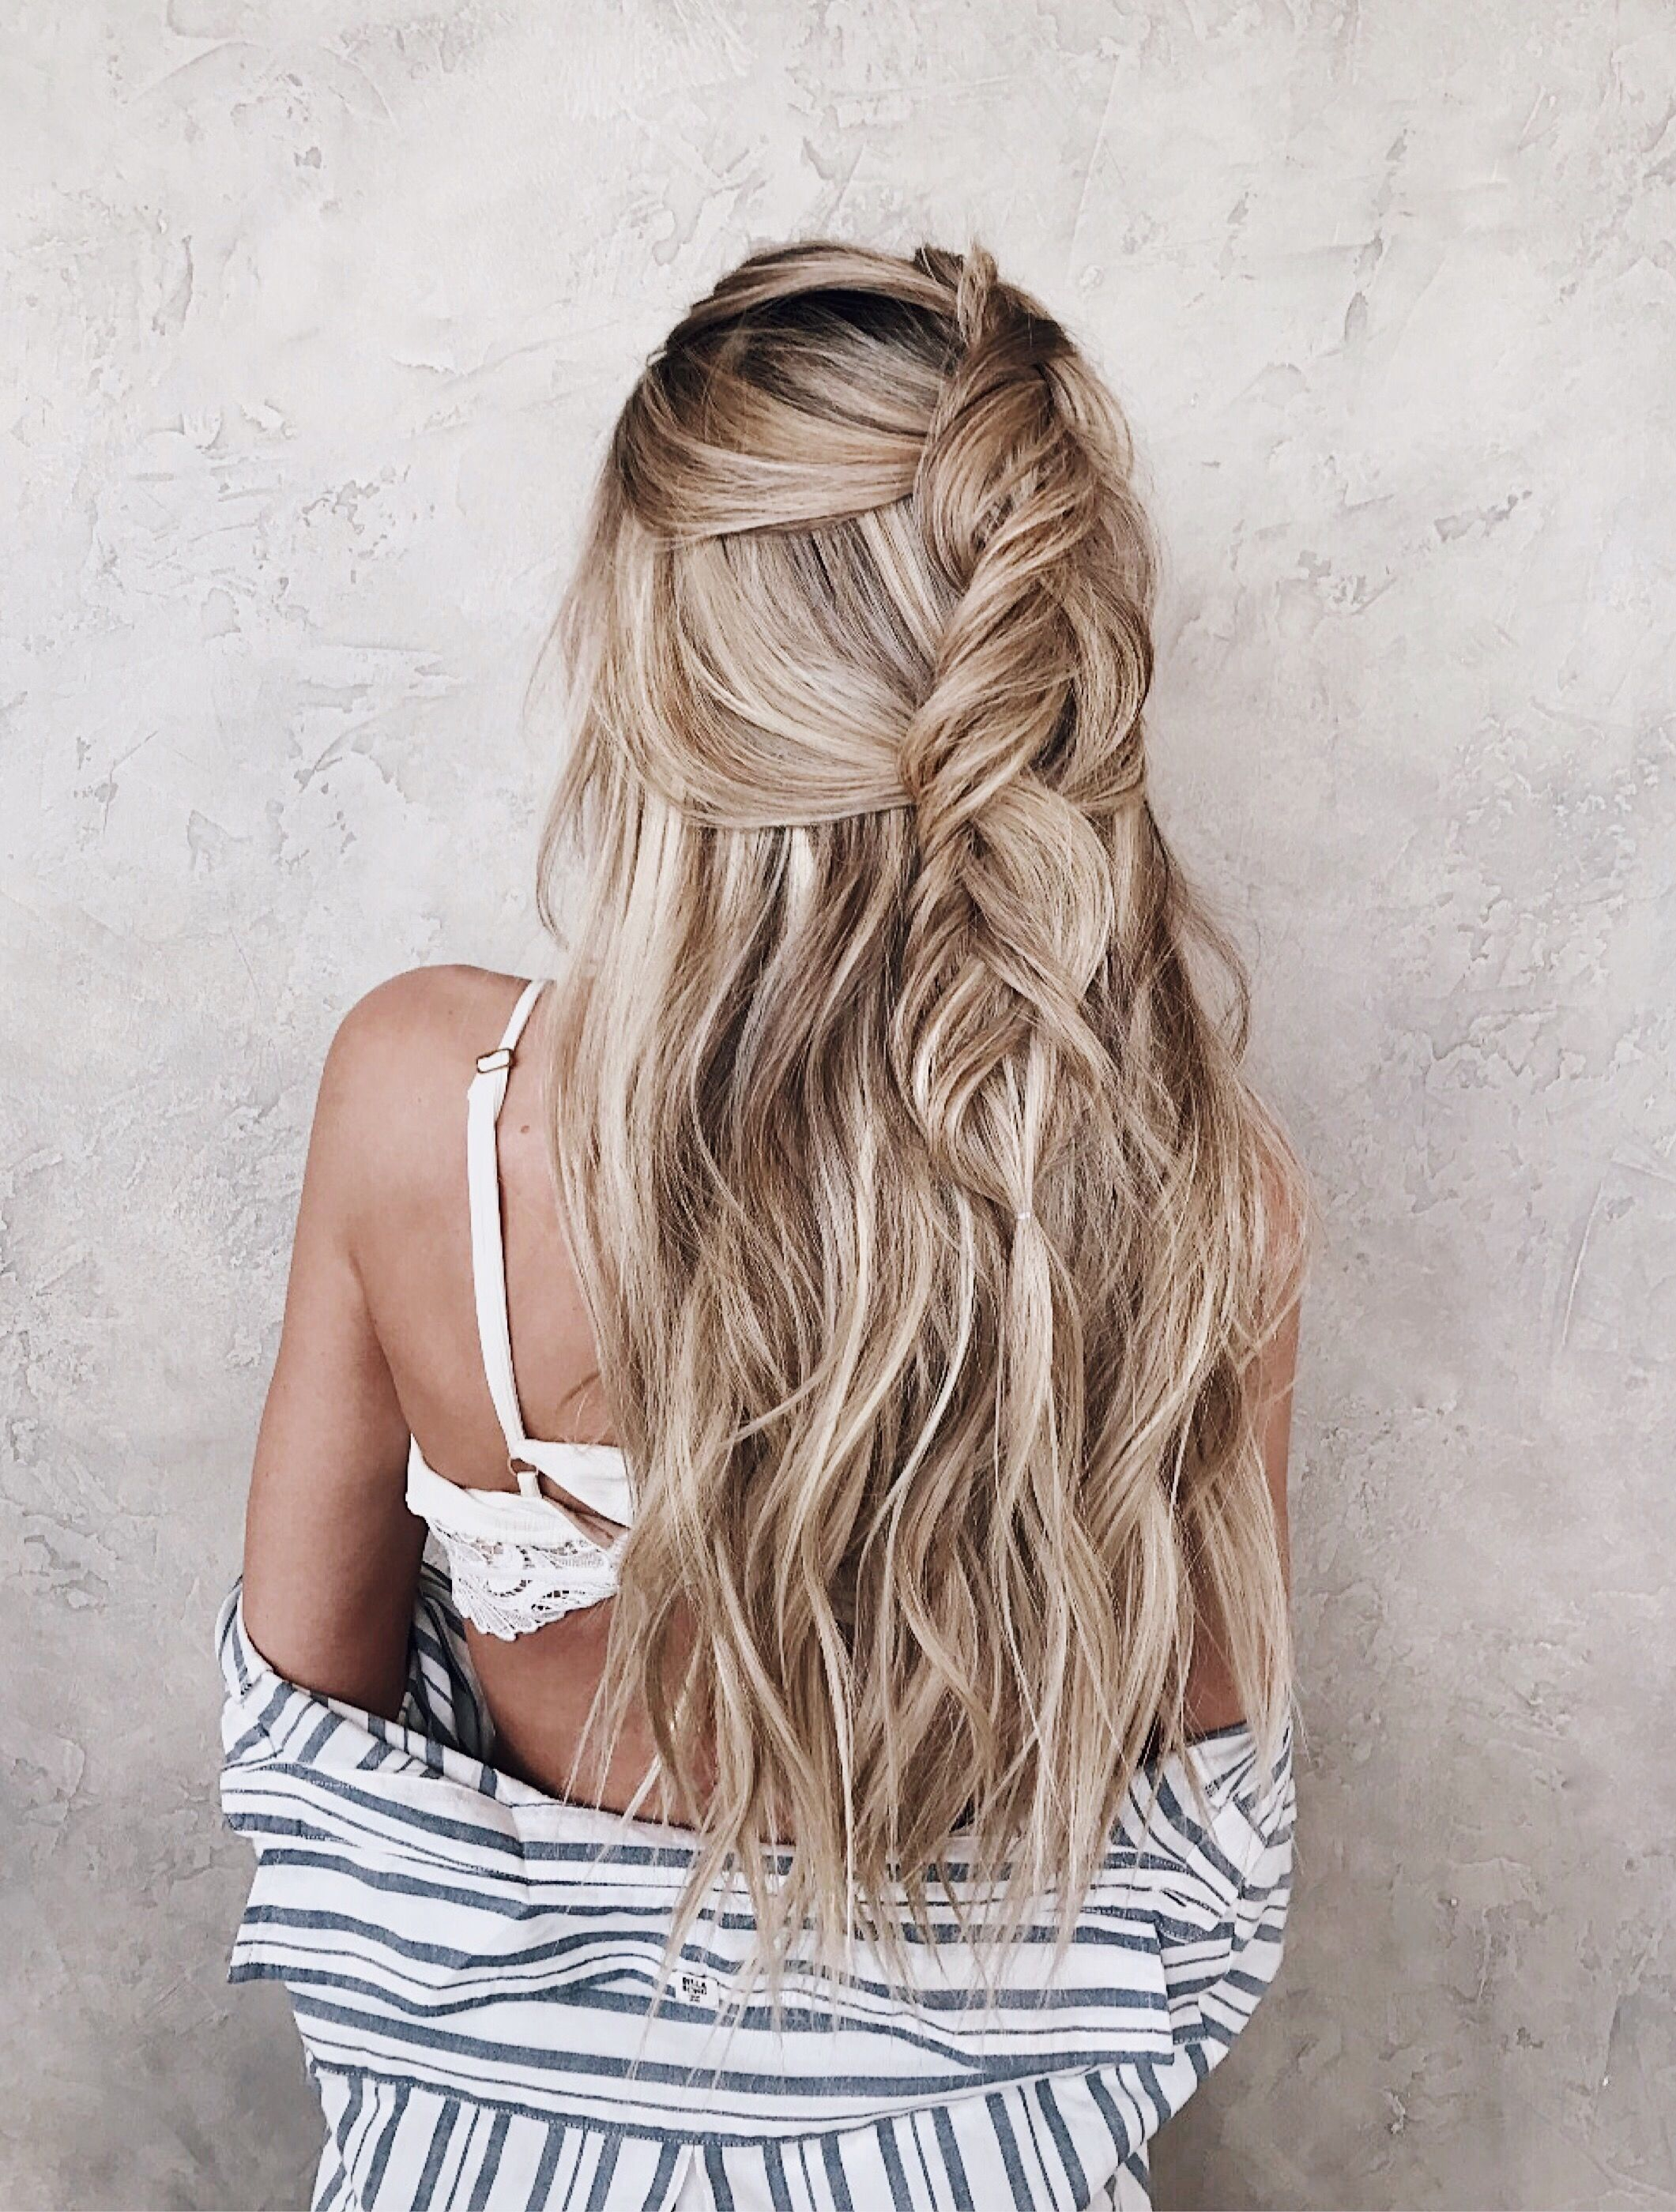 Beach Hairstyles Glamorous Loose Blond Braid Half Up Hairstyle Beach Hair Fleurpinterest